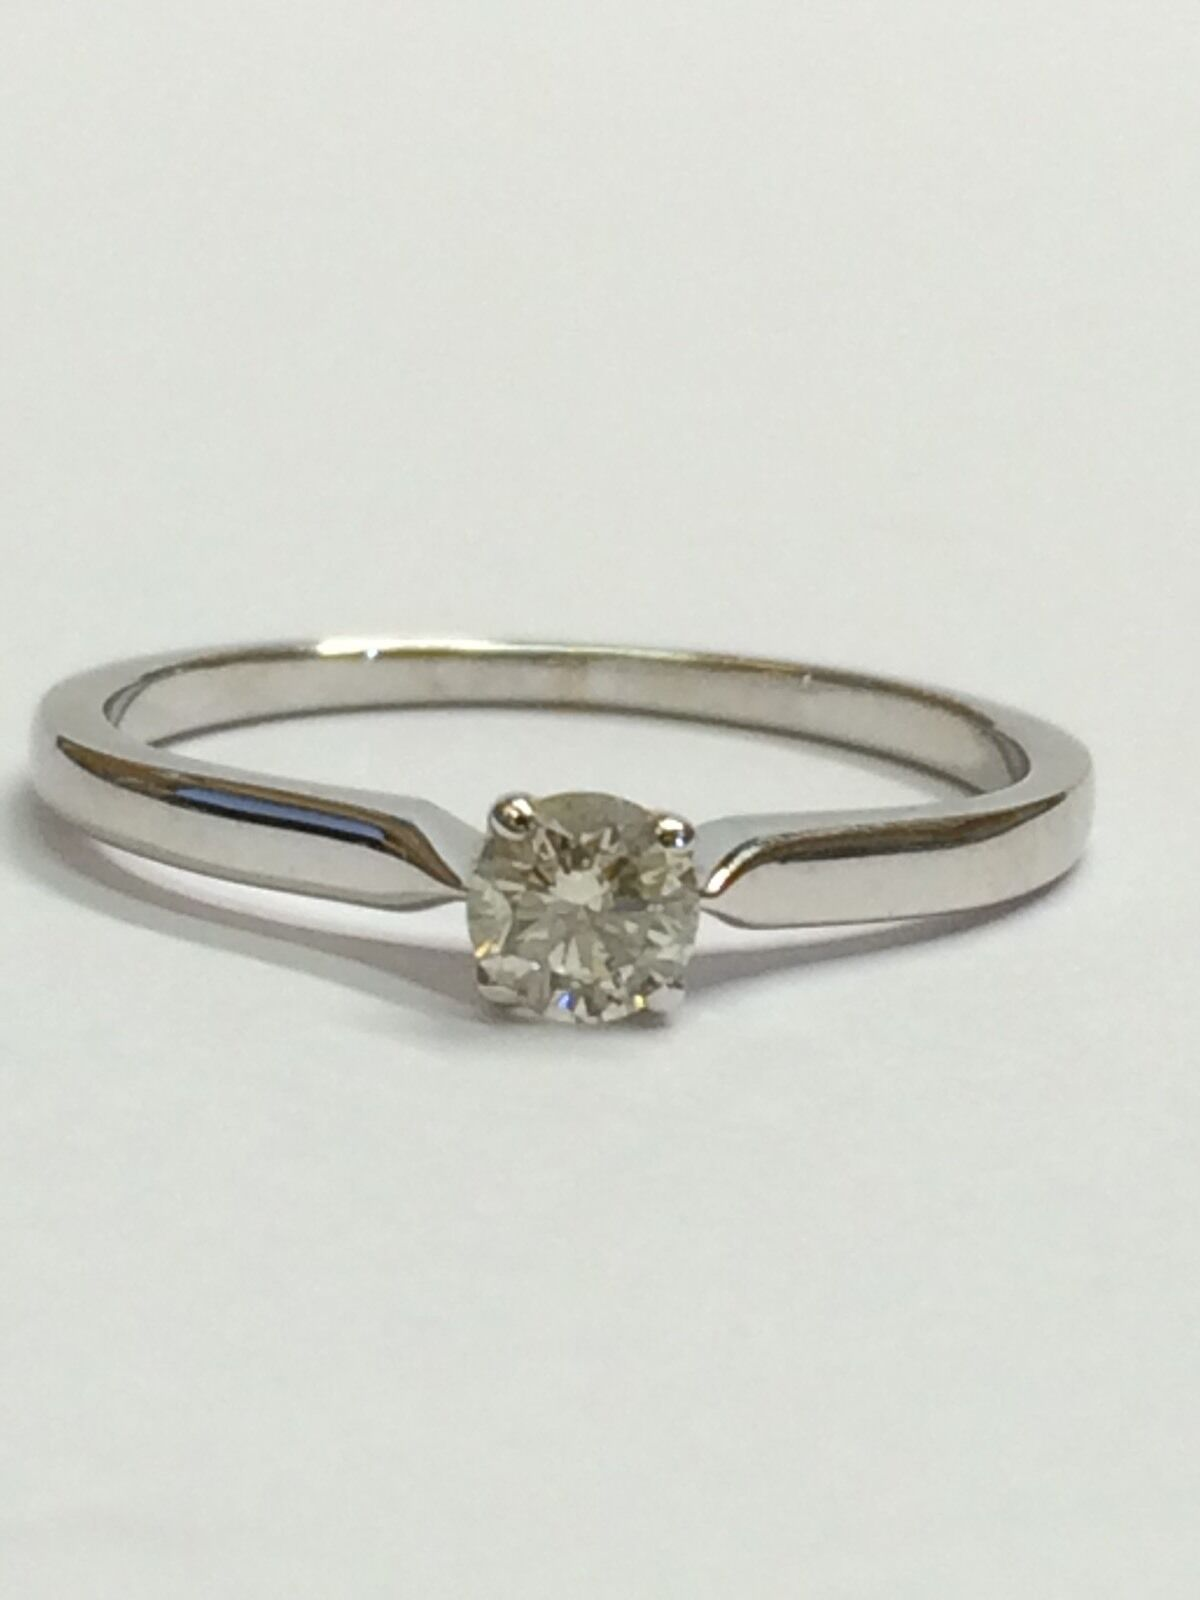 0.25ct Diamond Solitaire Engagement Ring - I SI- 9ct White gold - Size N - 1.52g